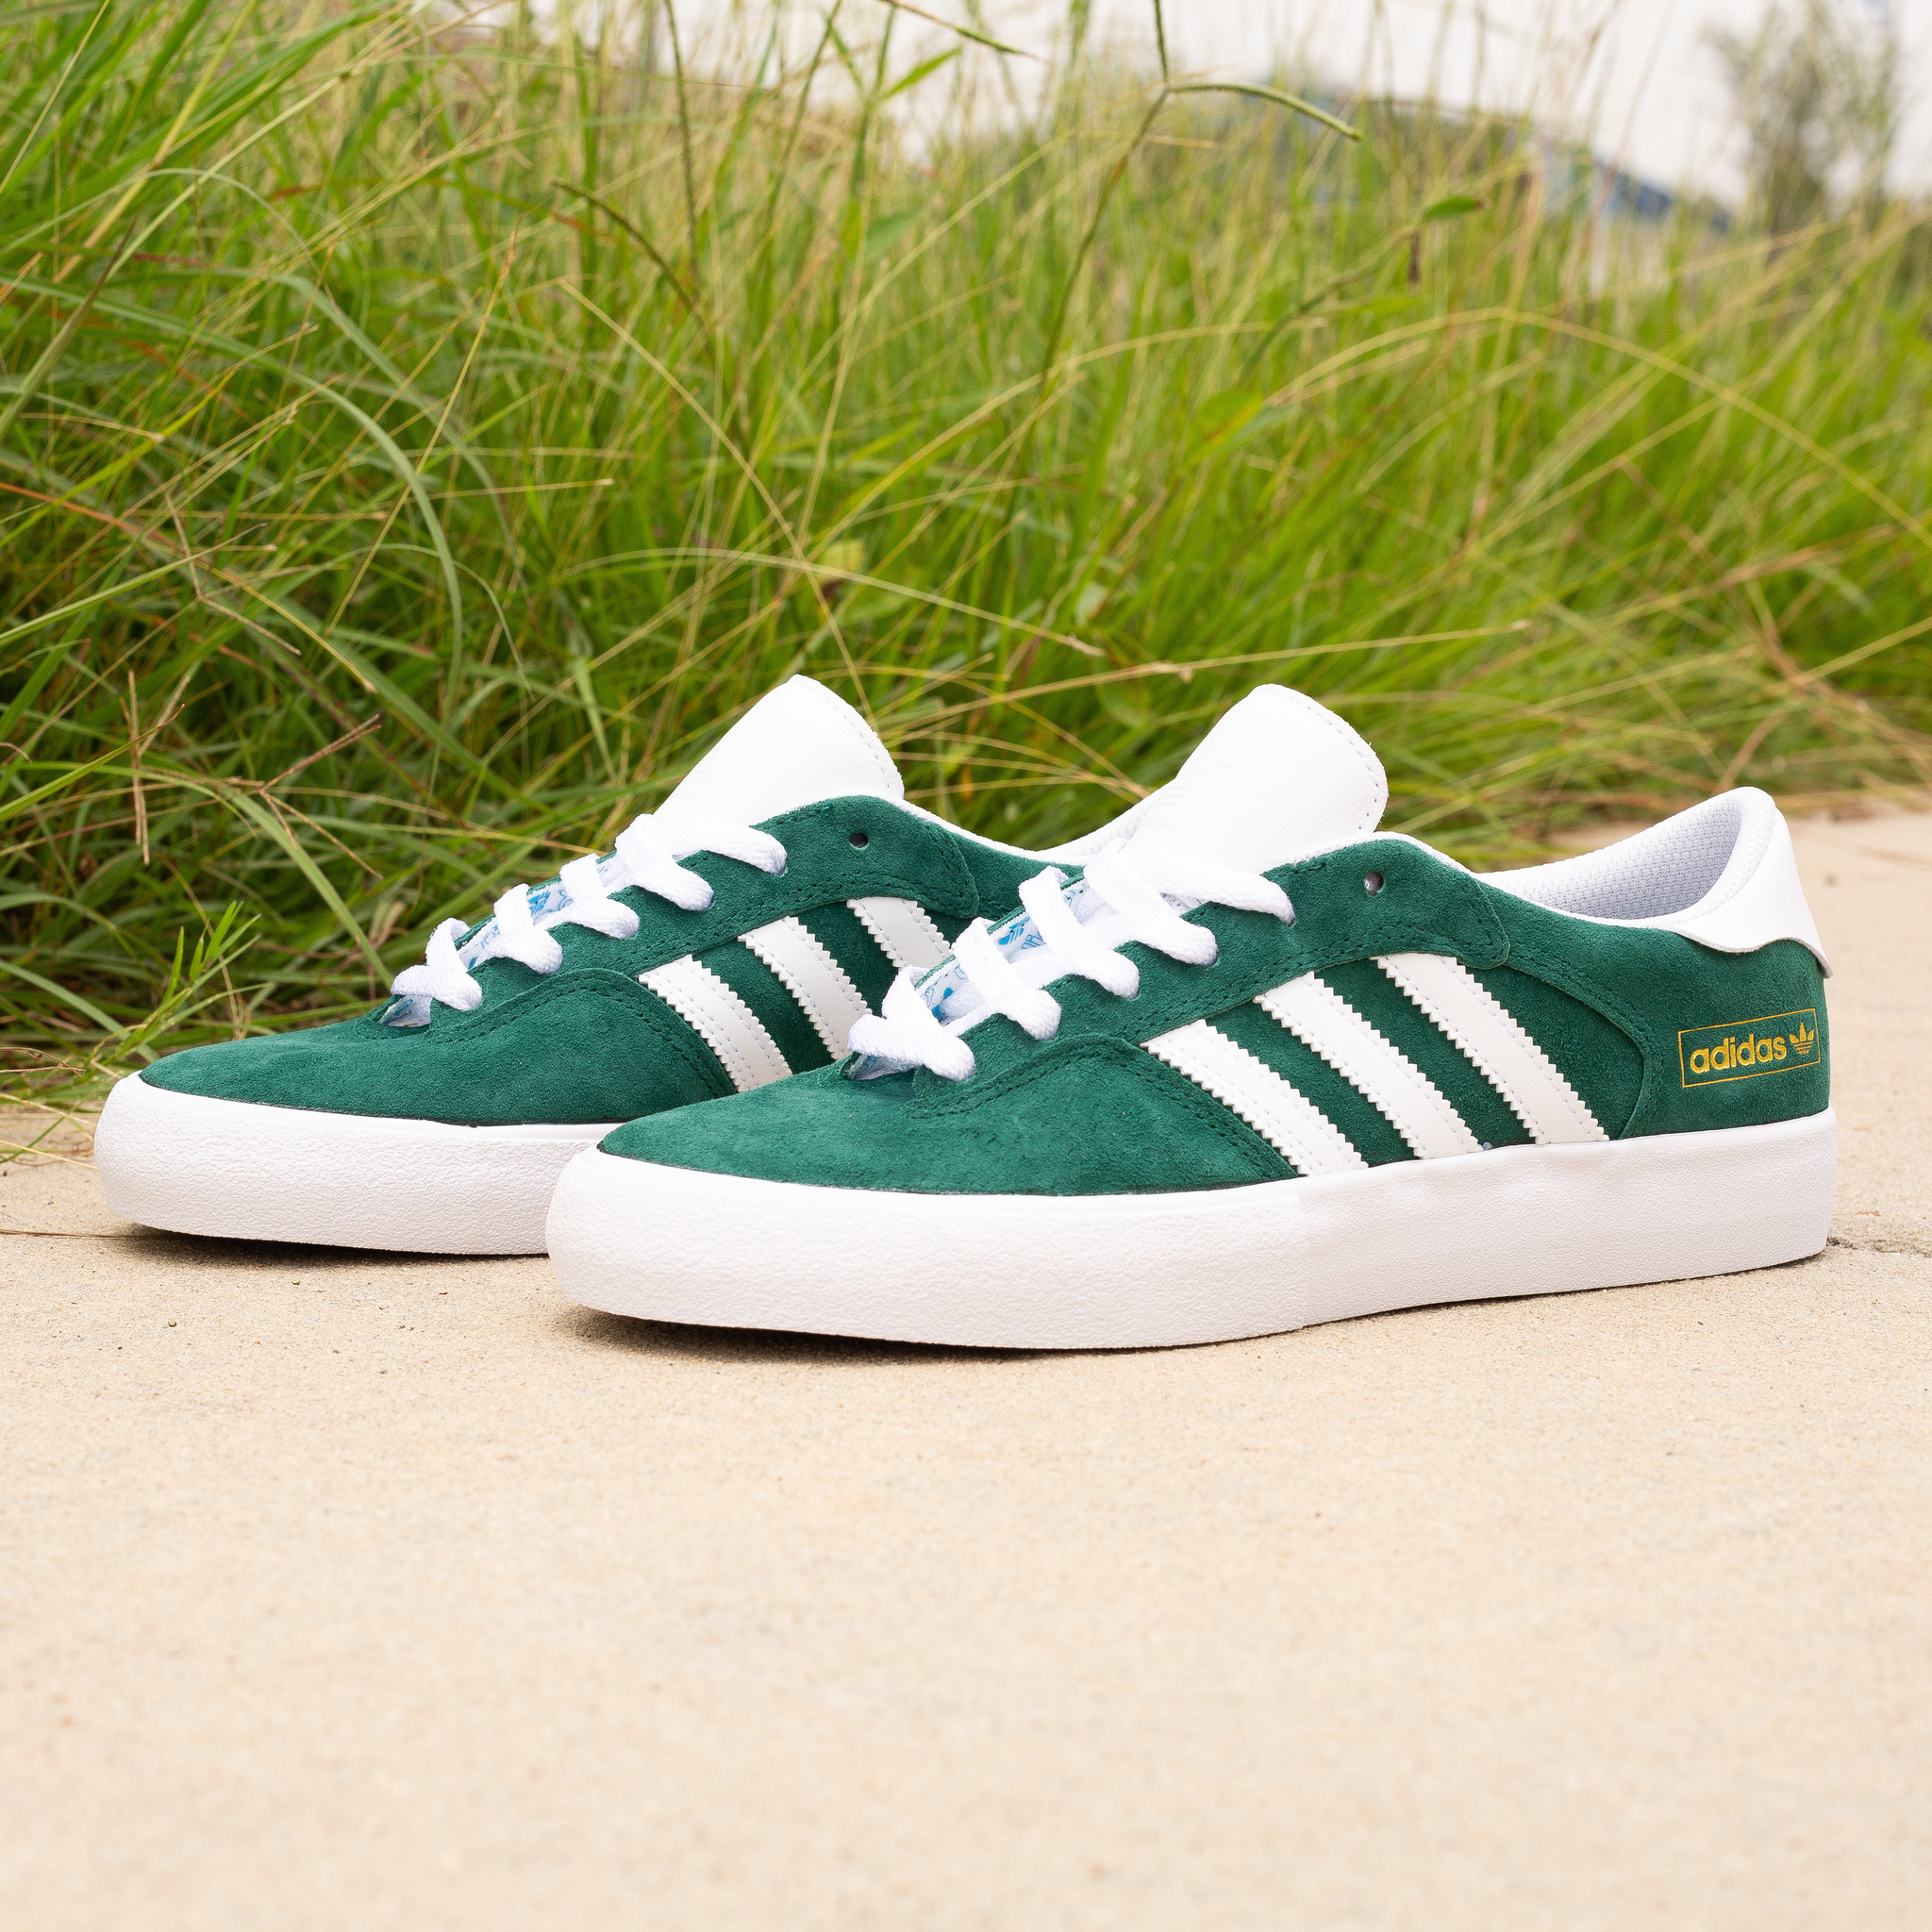 adidas Matchbreak Super Green/White